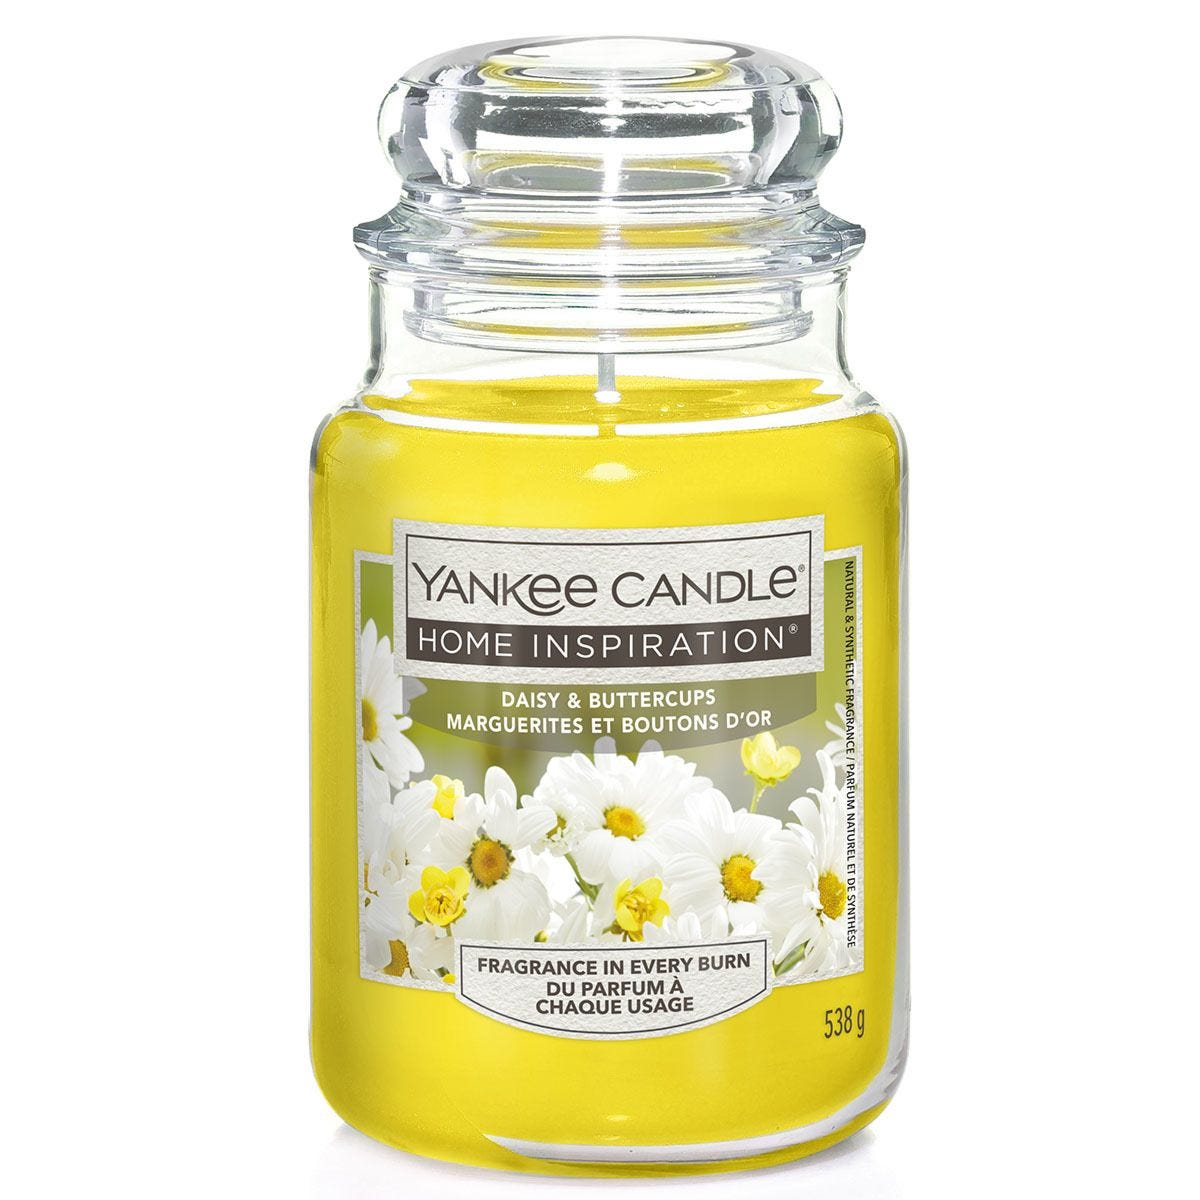 Yankee Candle Home Inspiration Daisy & Buttercups Jar Candle